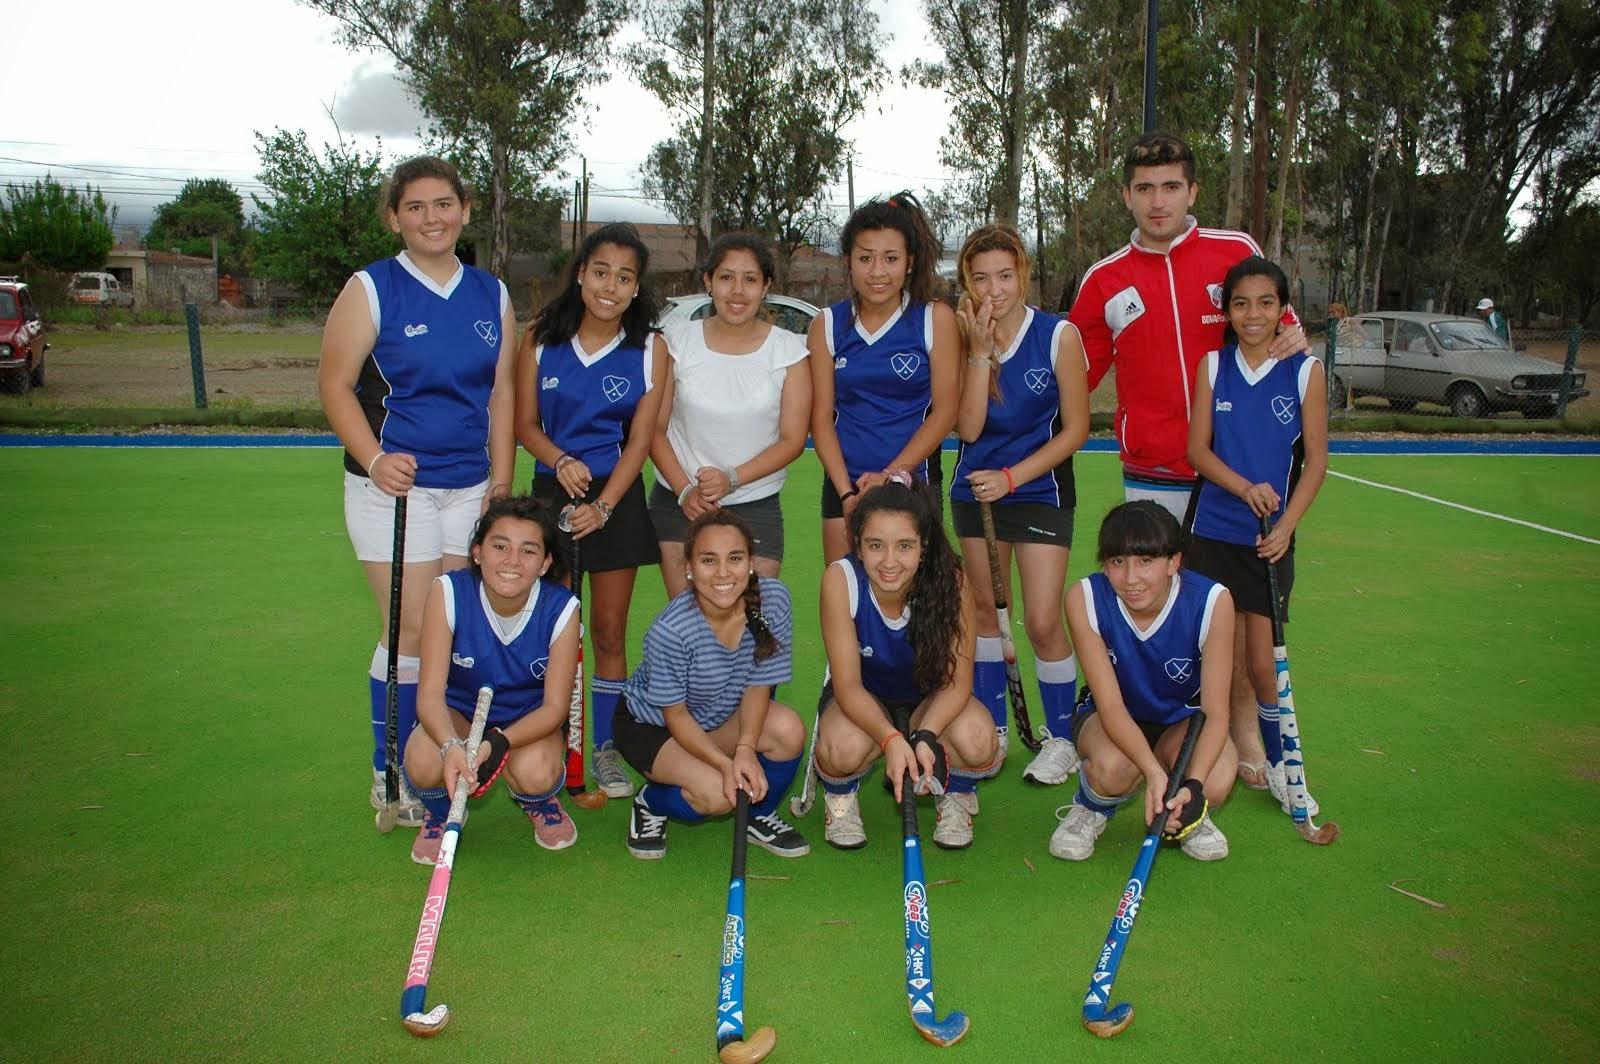 TRIBUNO HOCKEY